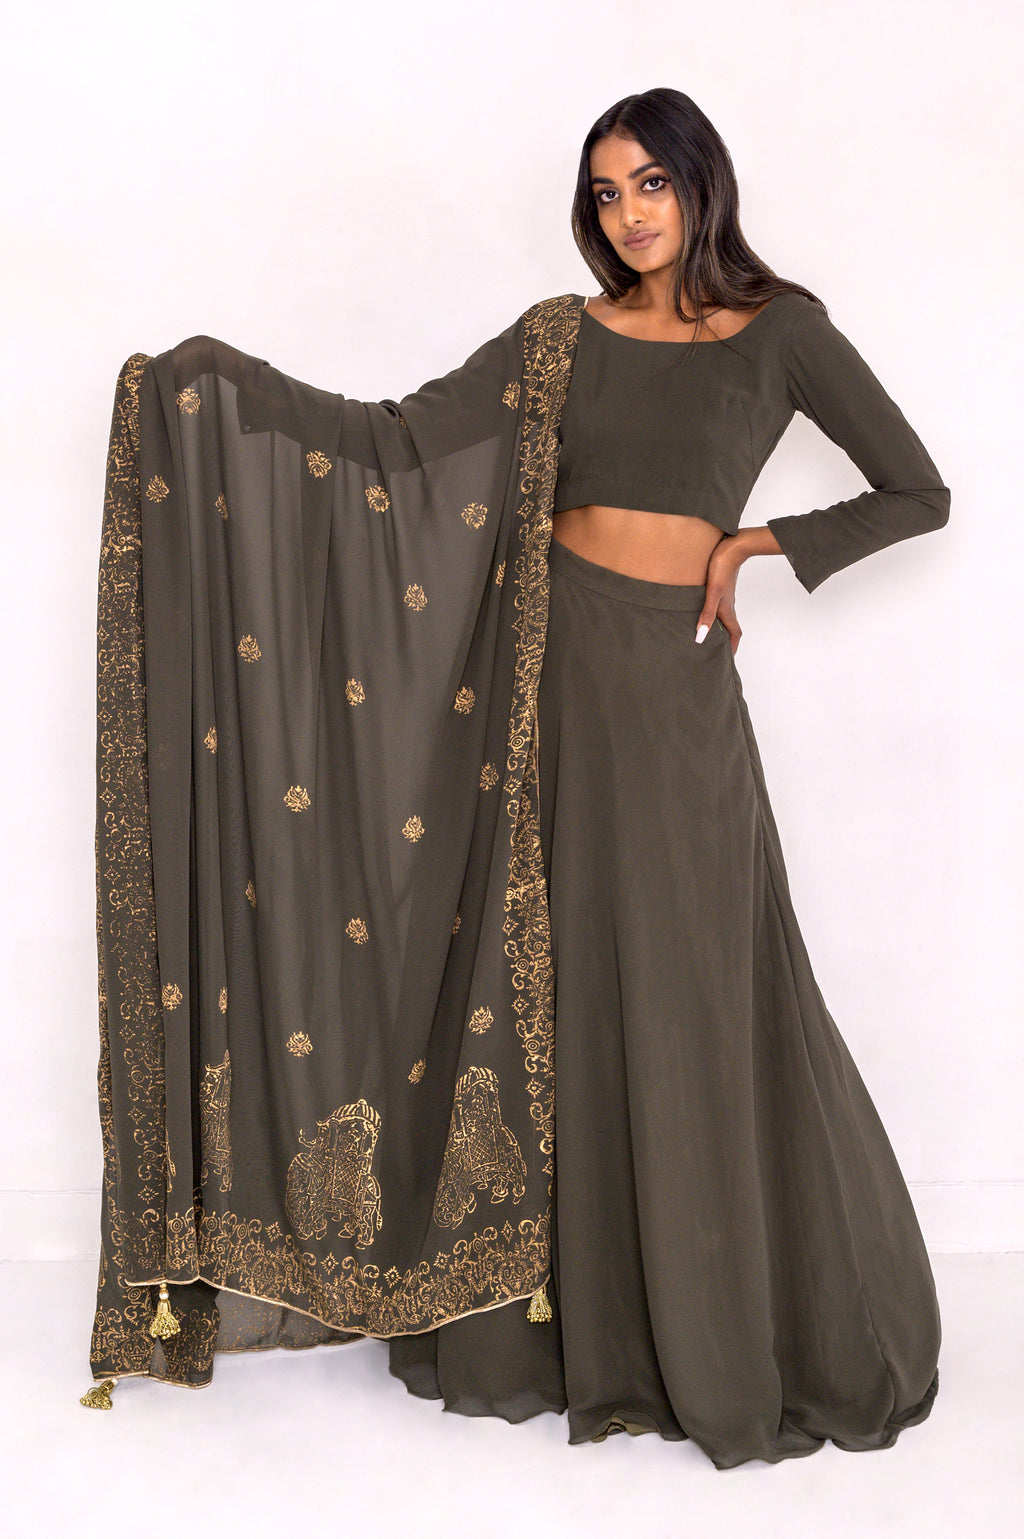 Indian bridal wear. Olive green lehenga set in chiffon with block print chiffon dupatta.  Skirt with POCKETS!